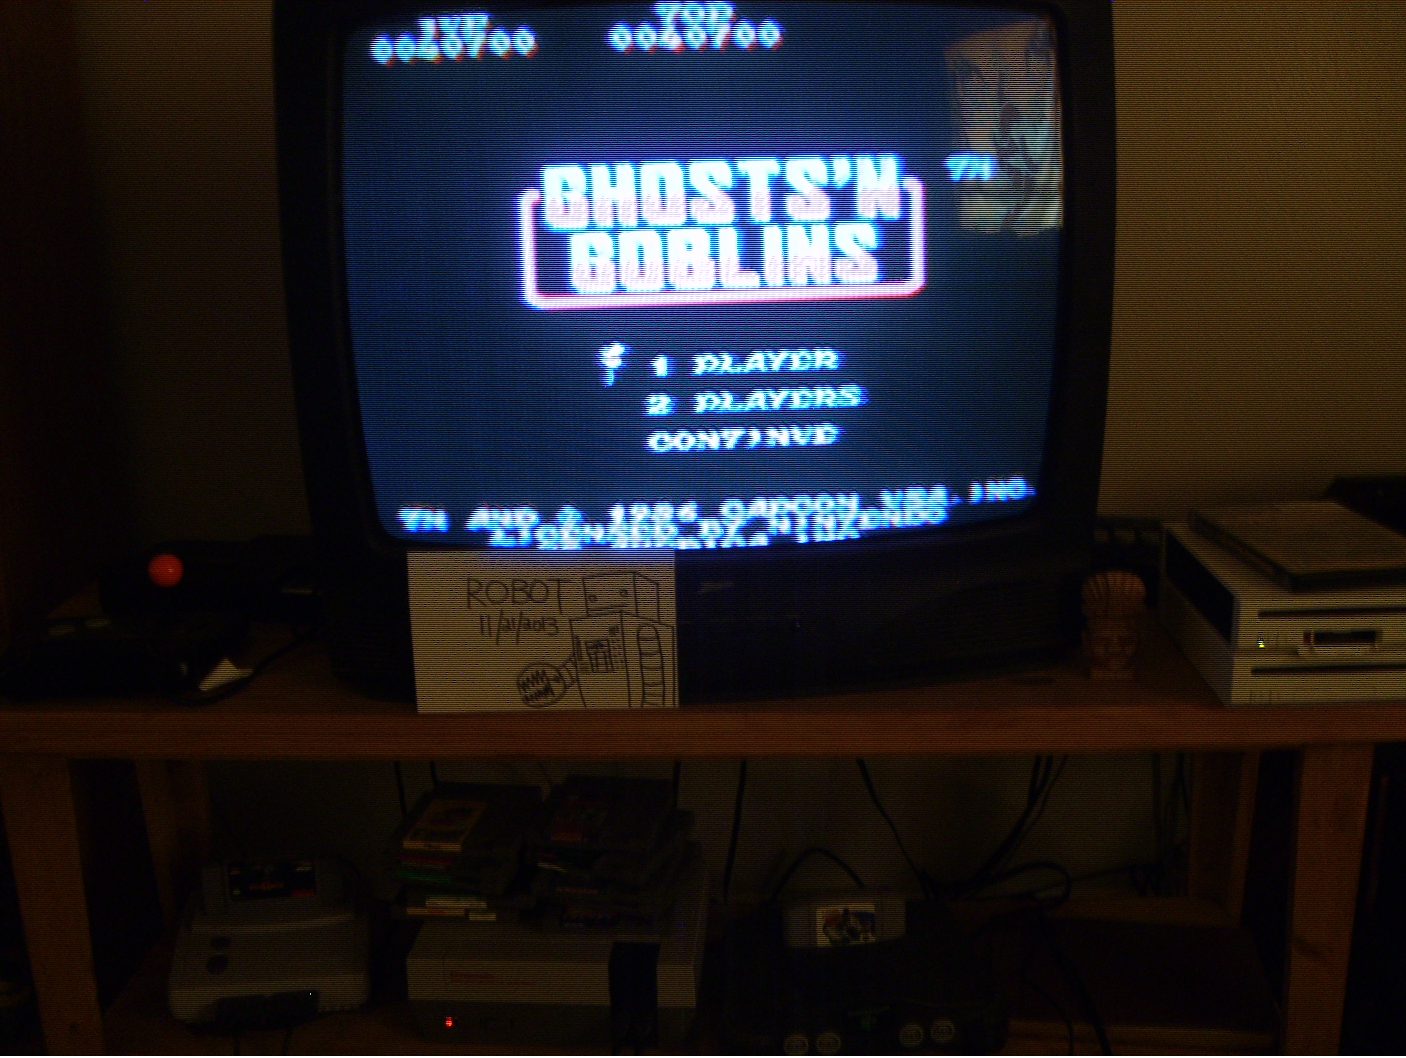 Ghosts N Goblins 40,700 points